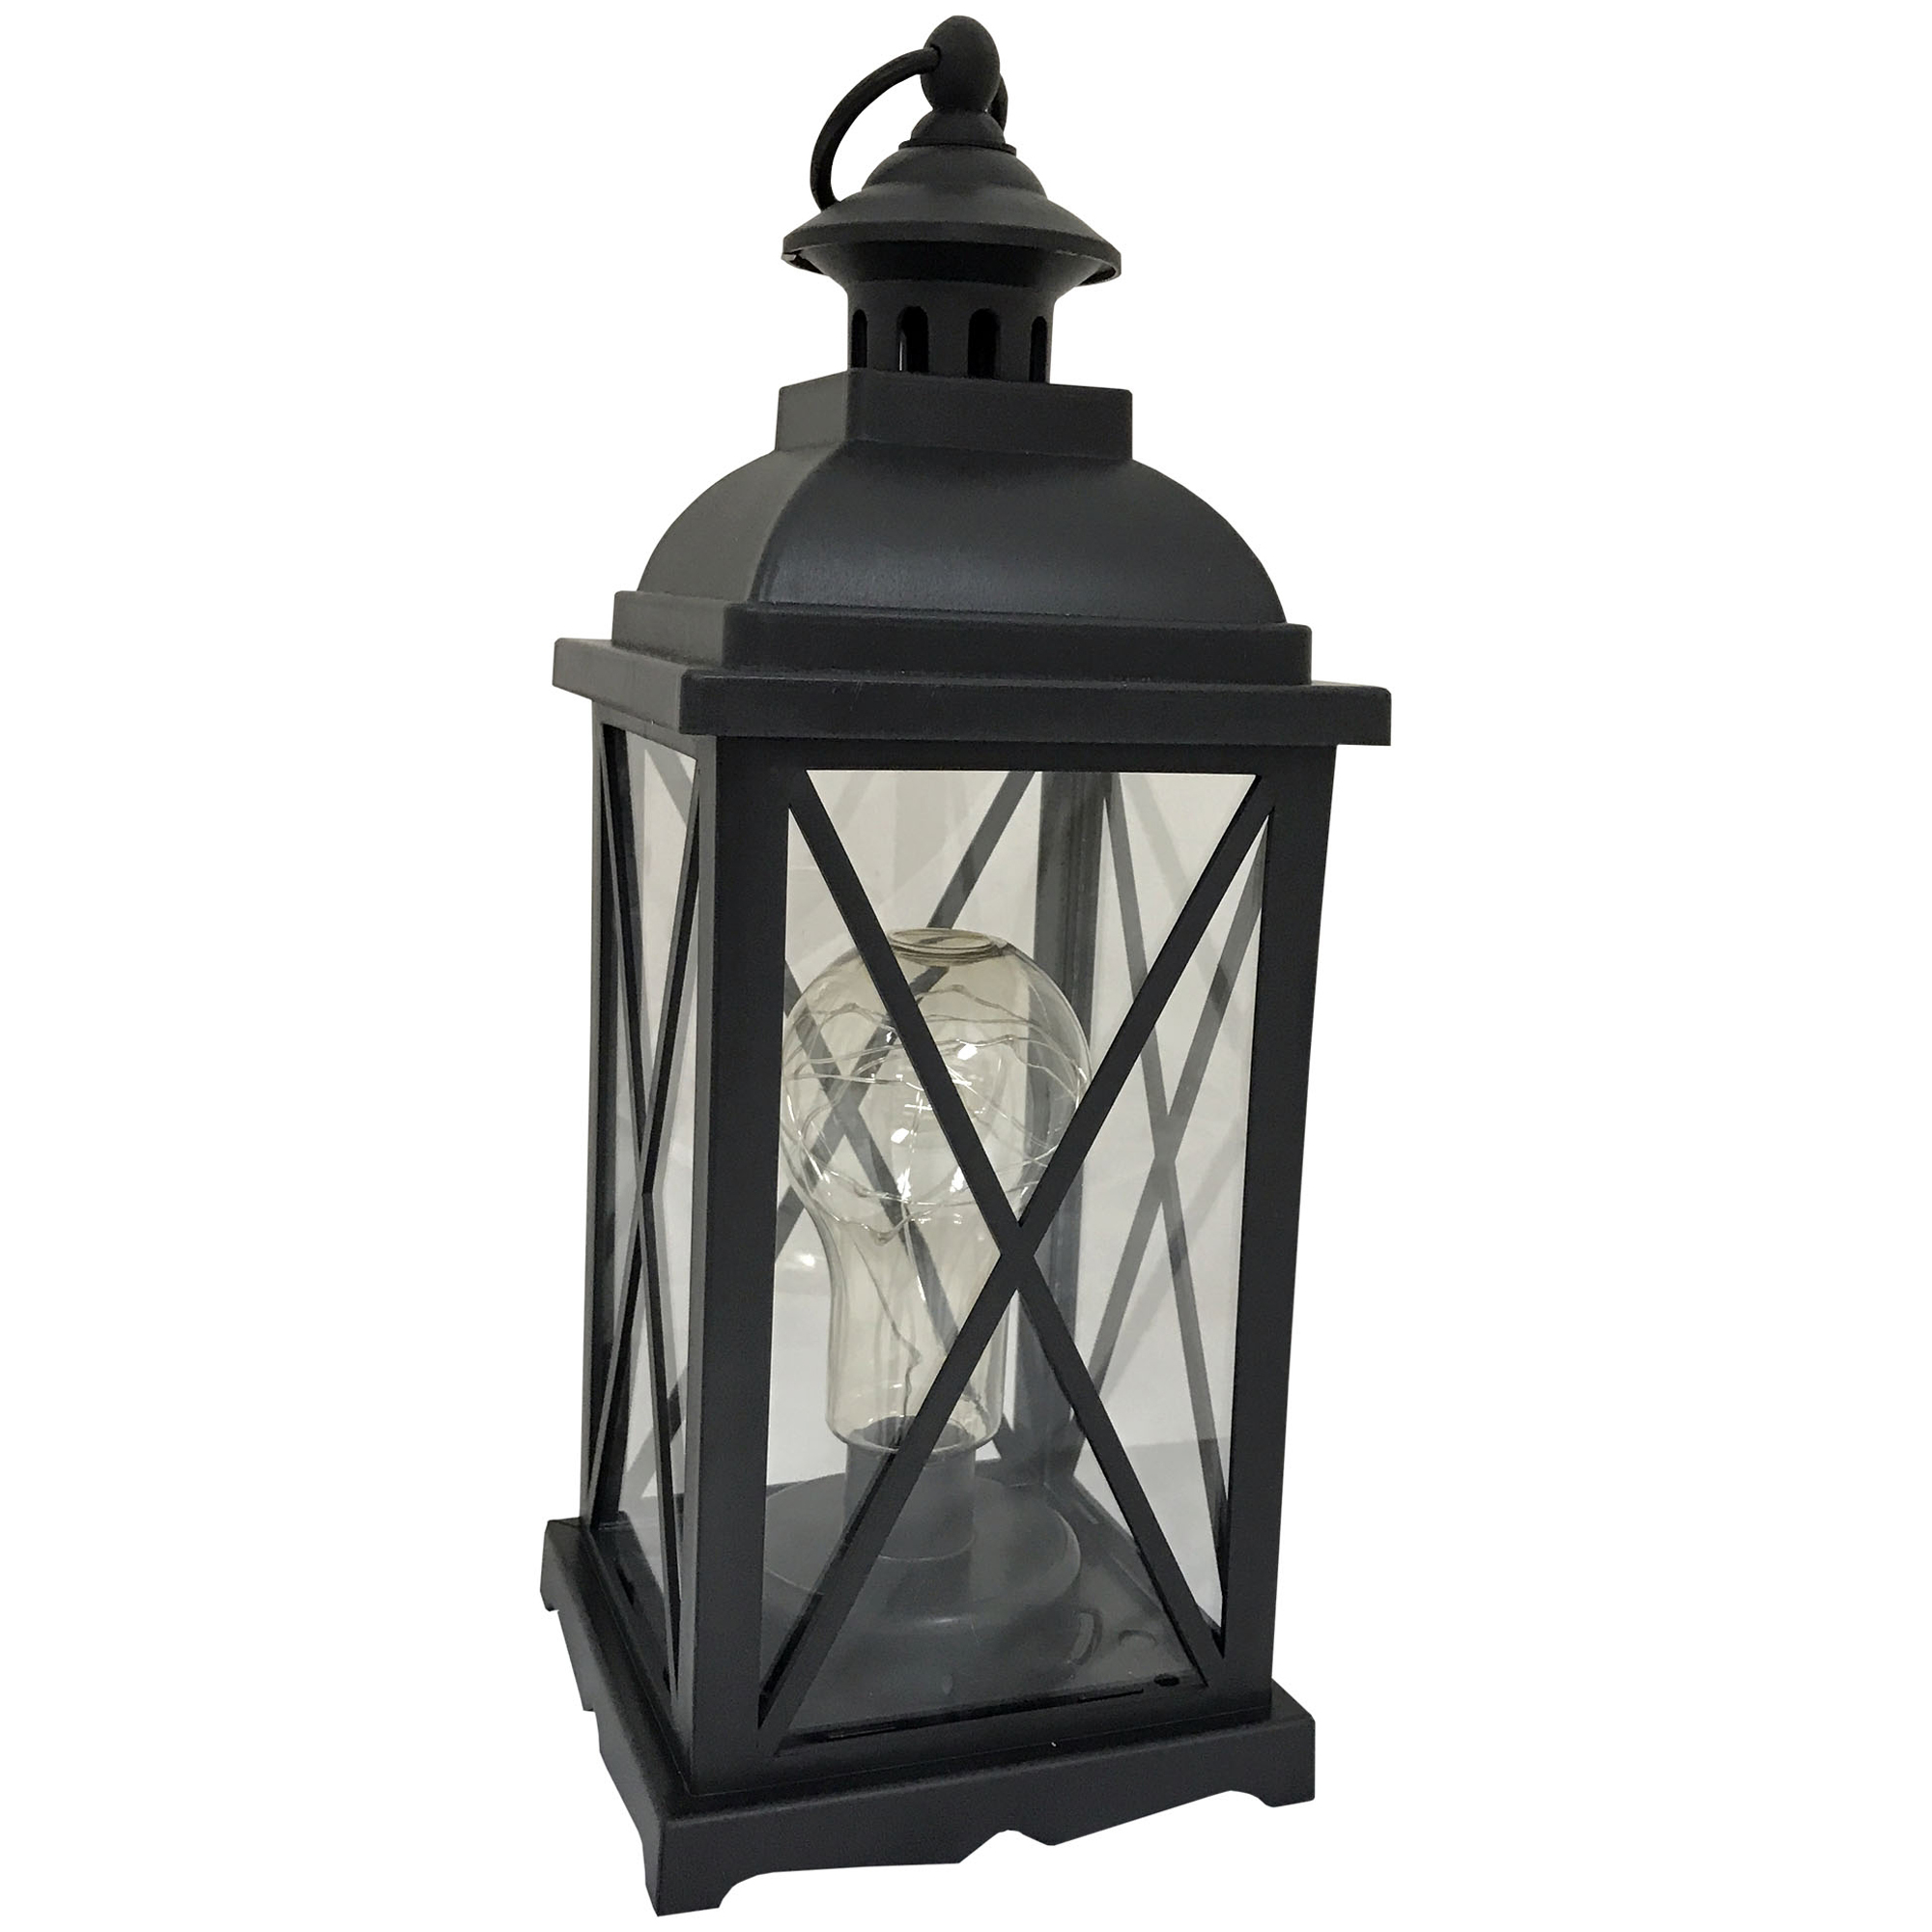 "Battery-Operated Decorative LED Lantern; Product Size: 14"" height, 5.5 width x 5.5 inch despth. Indoors/ Outdoors, Portable, Home, yard decor"